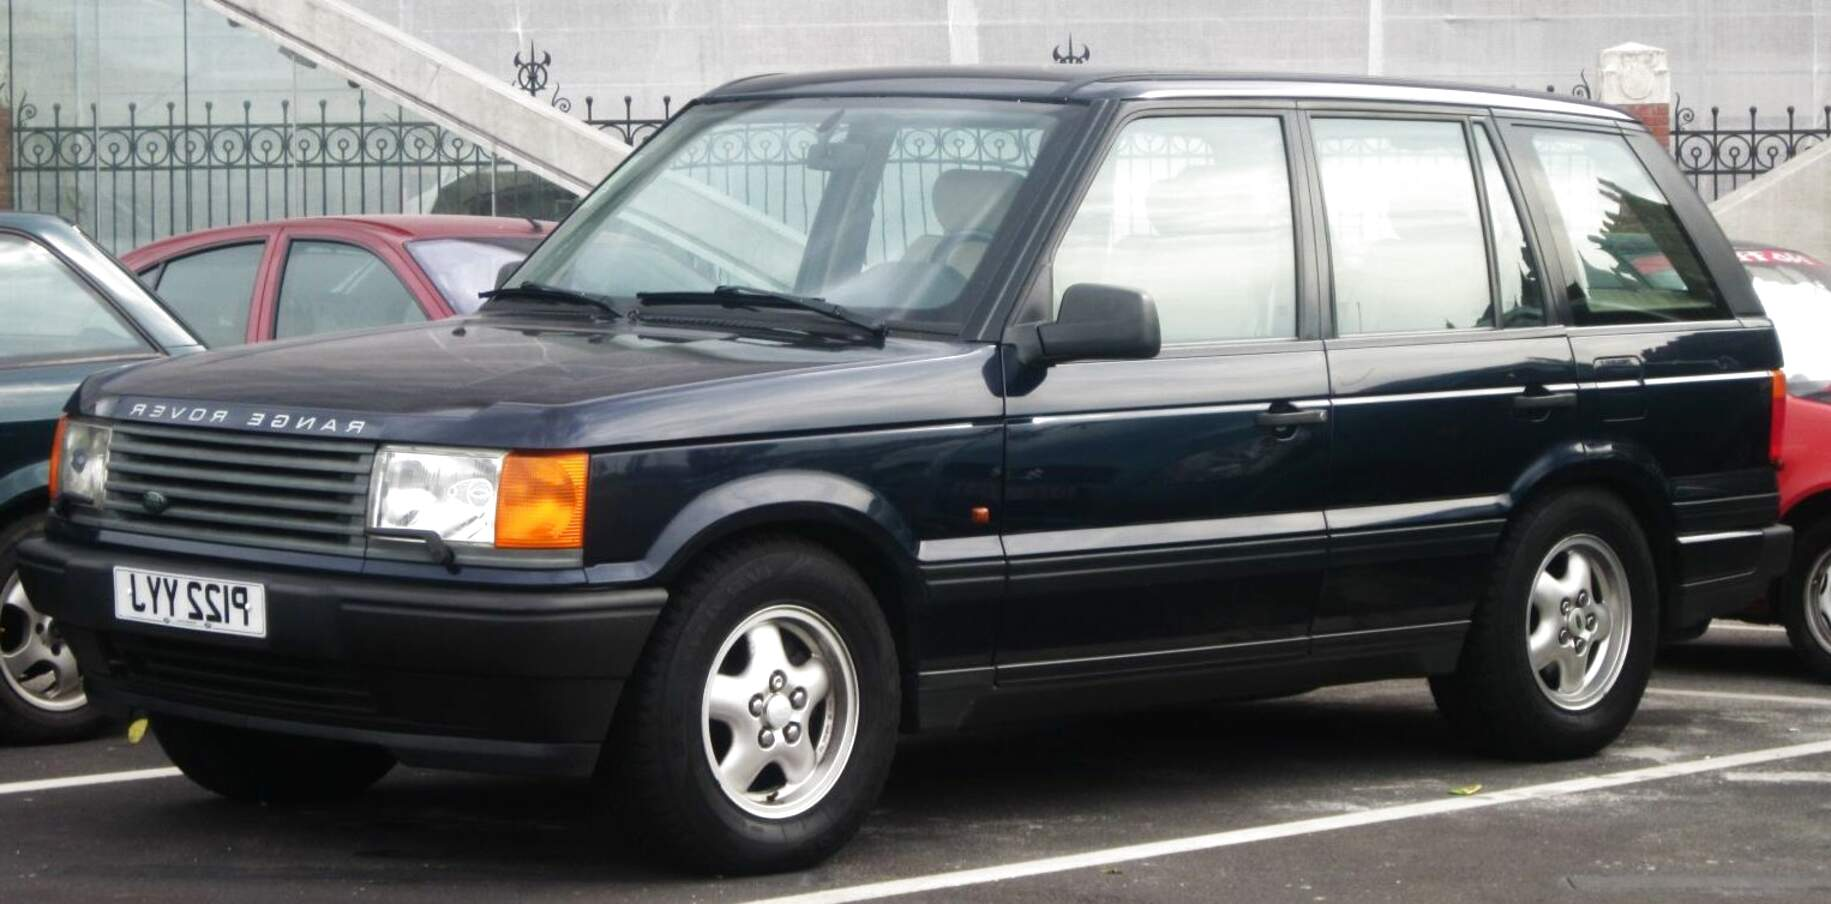 p38 range rover for sale